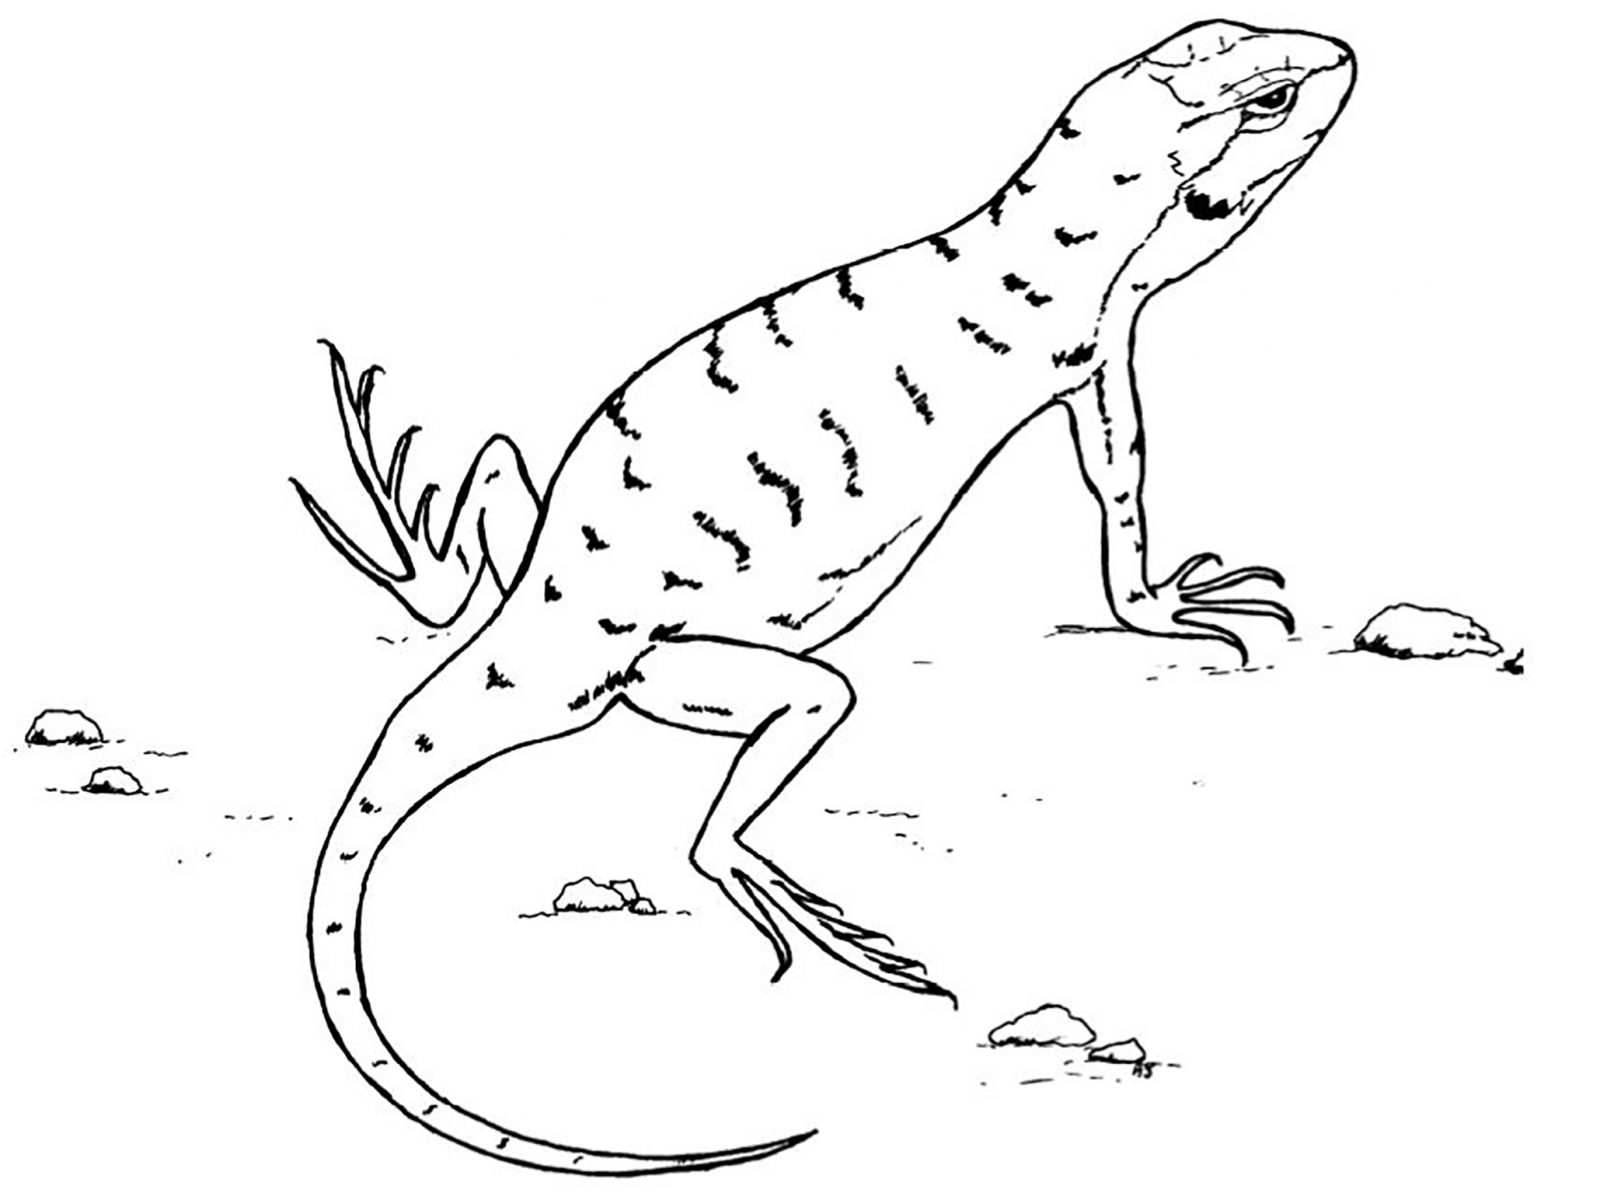 lizard pictures to print printable lizard coloring pages for kids cool2bkids lizard to pictures print 1 1